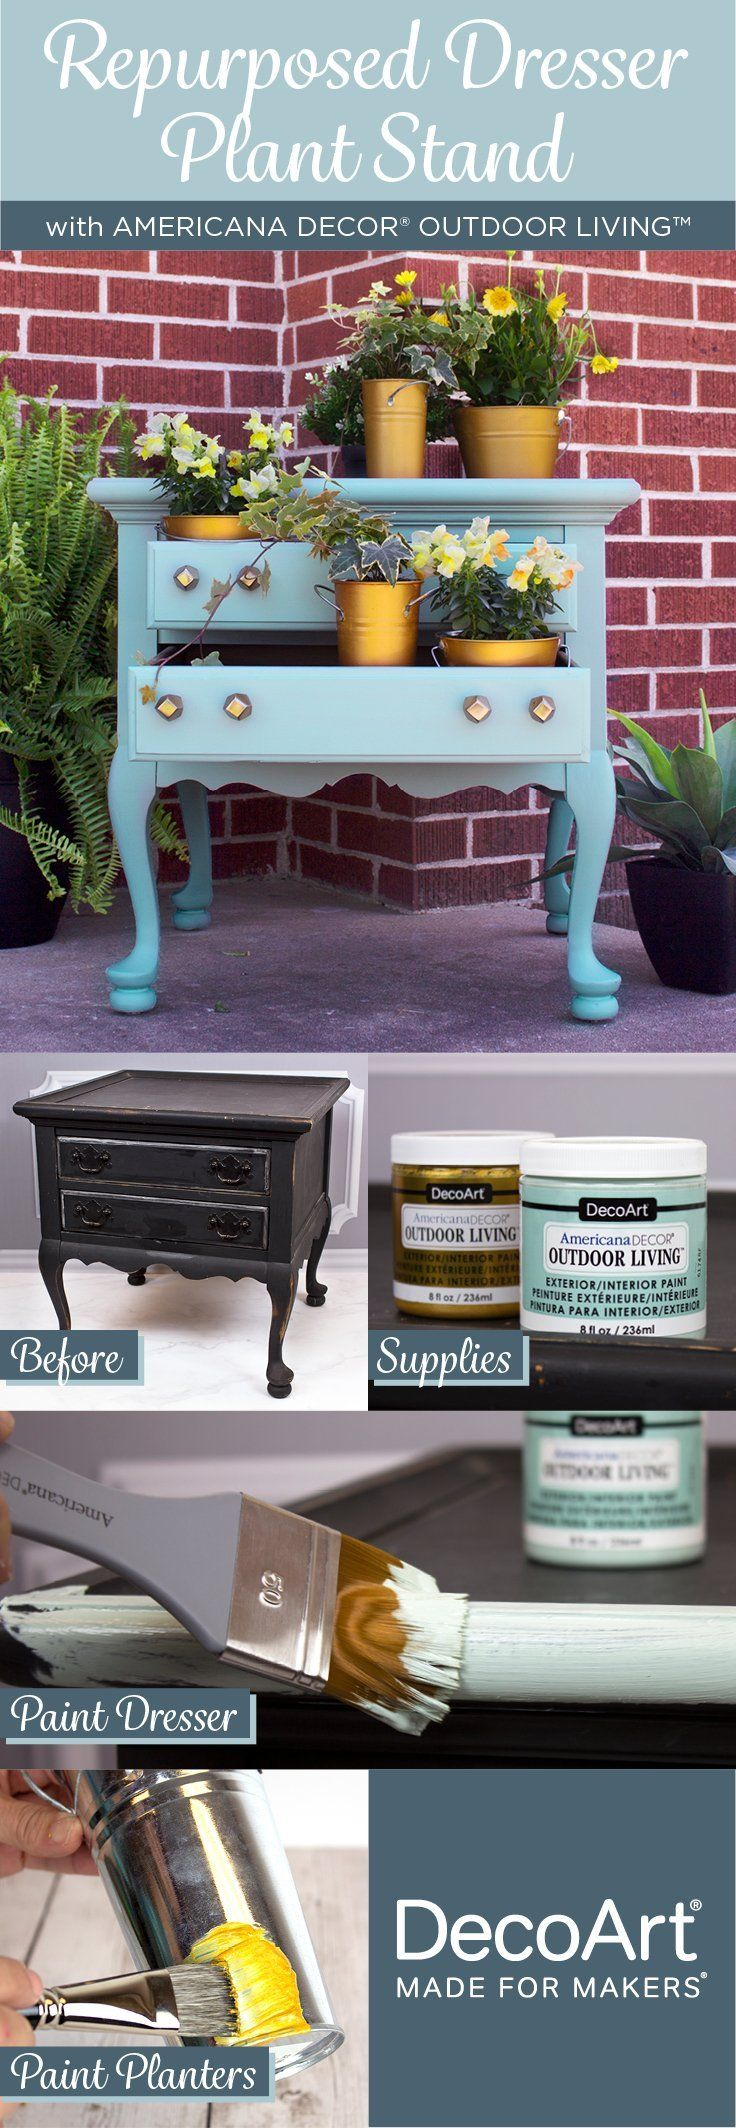 Repurpose an old dresser into the perfect plant stand with